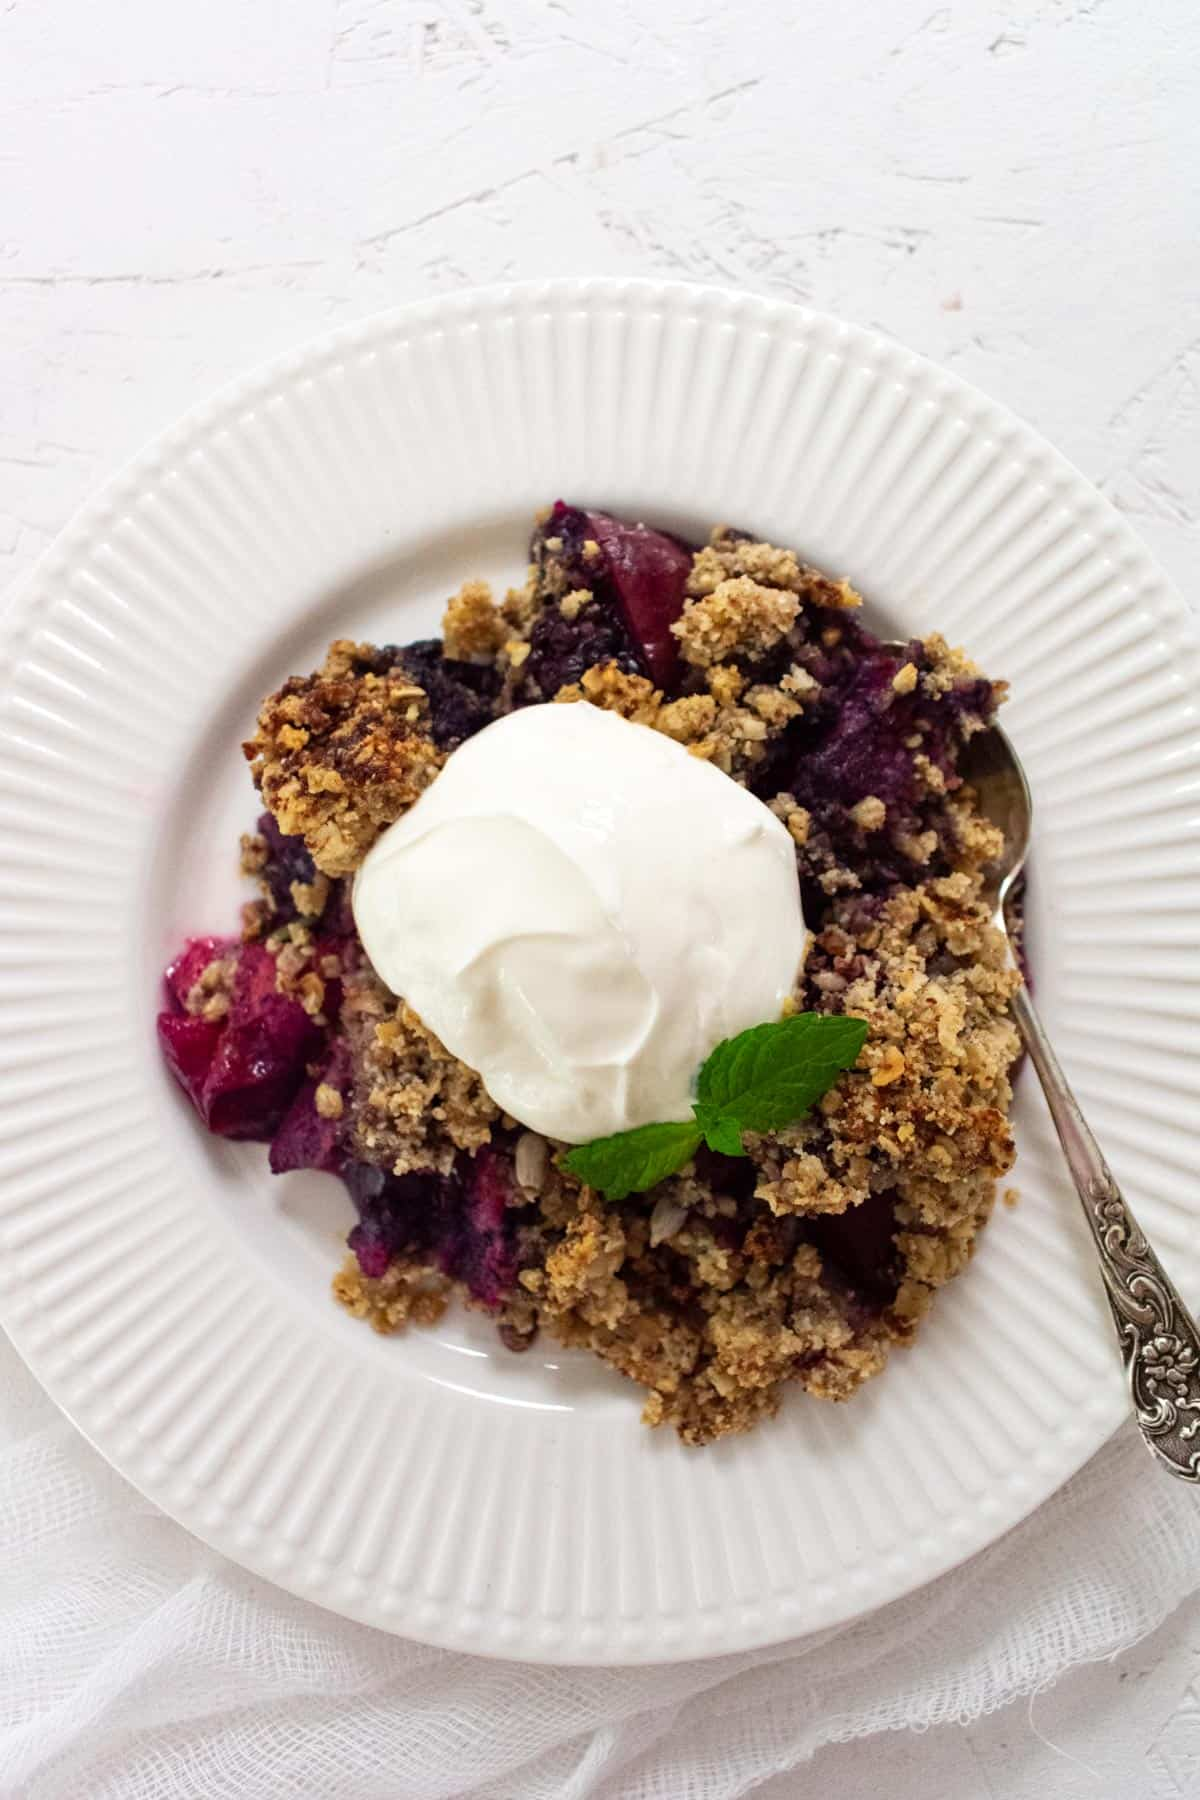 Portion of plum berry crisp on white plate topped with greek yogurt